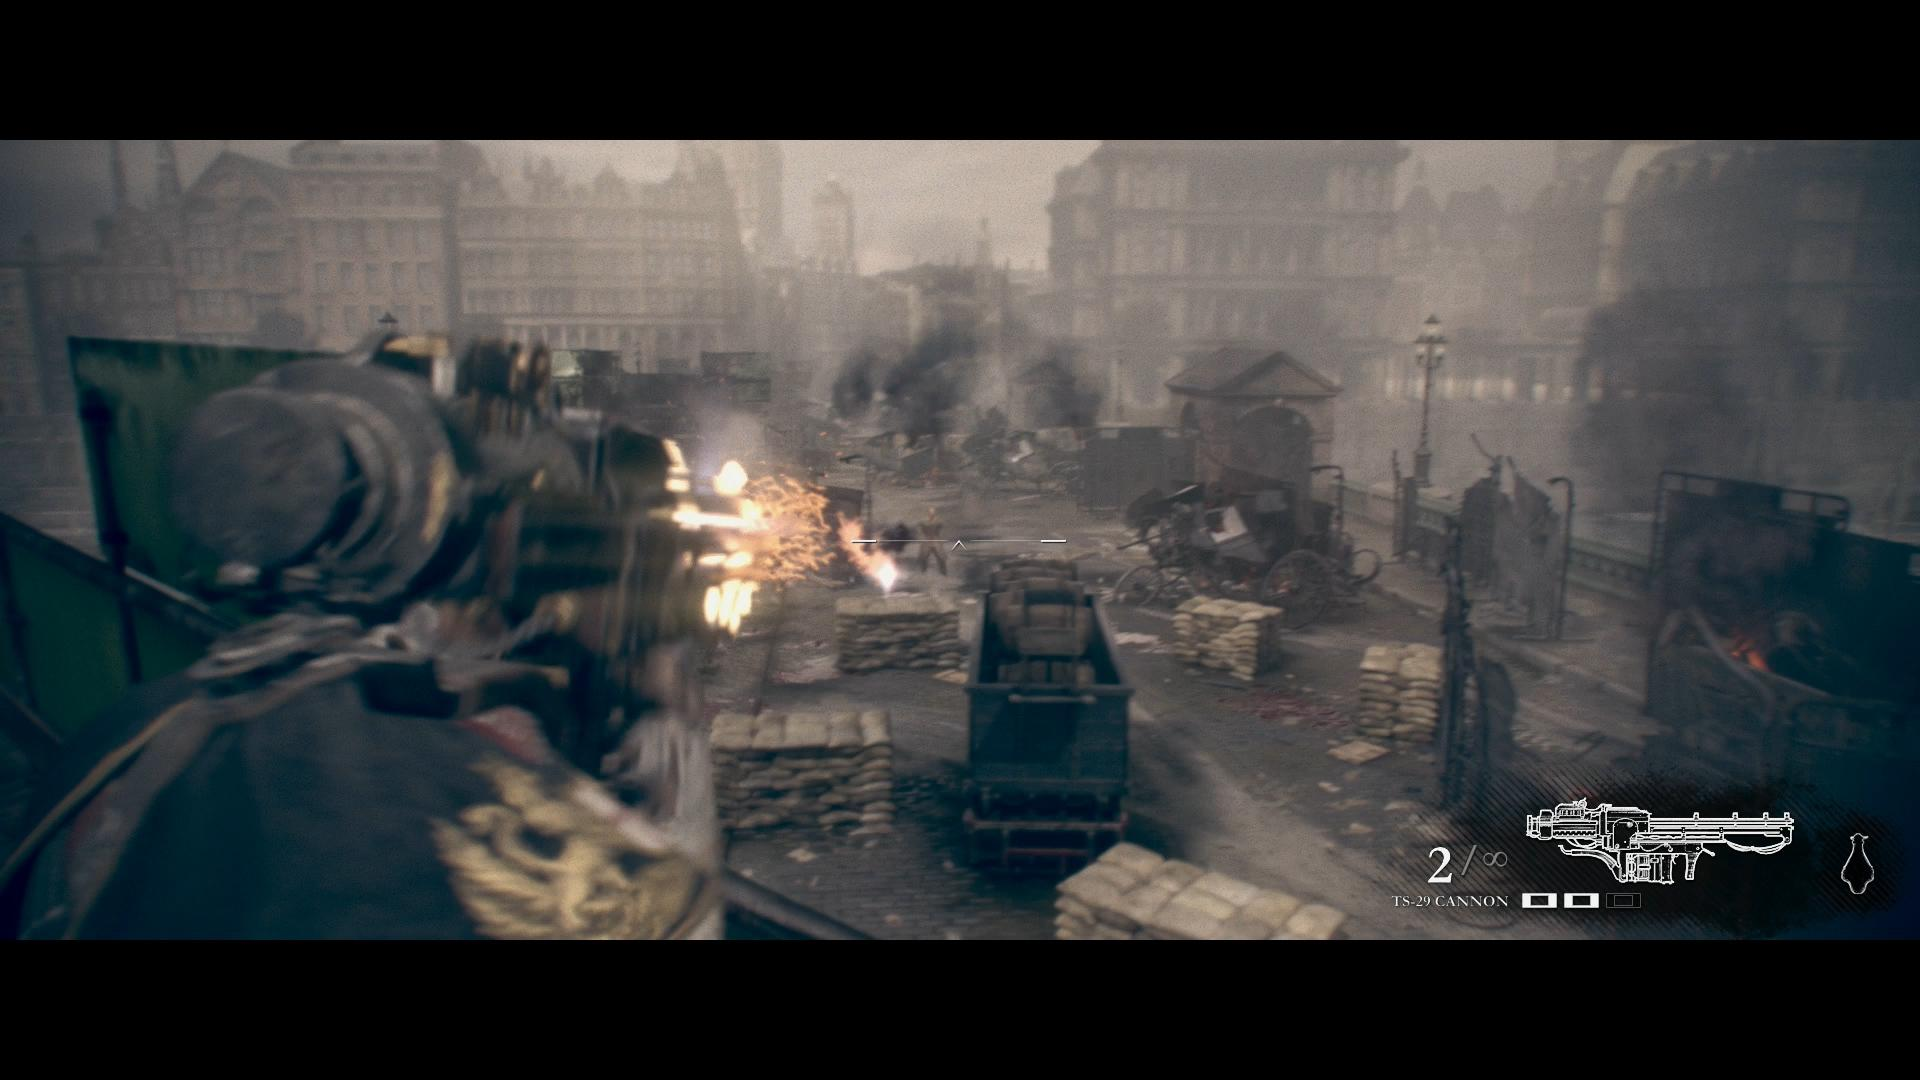 The Order 1886 - Science Gun